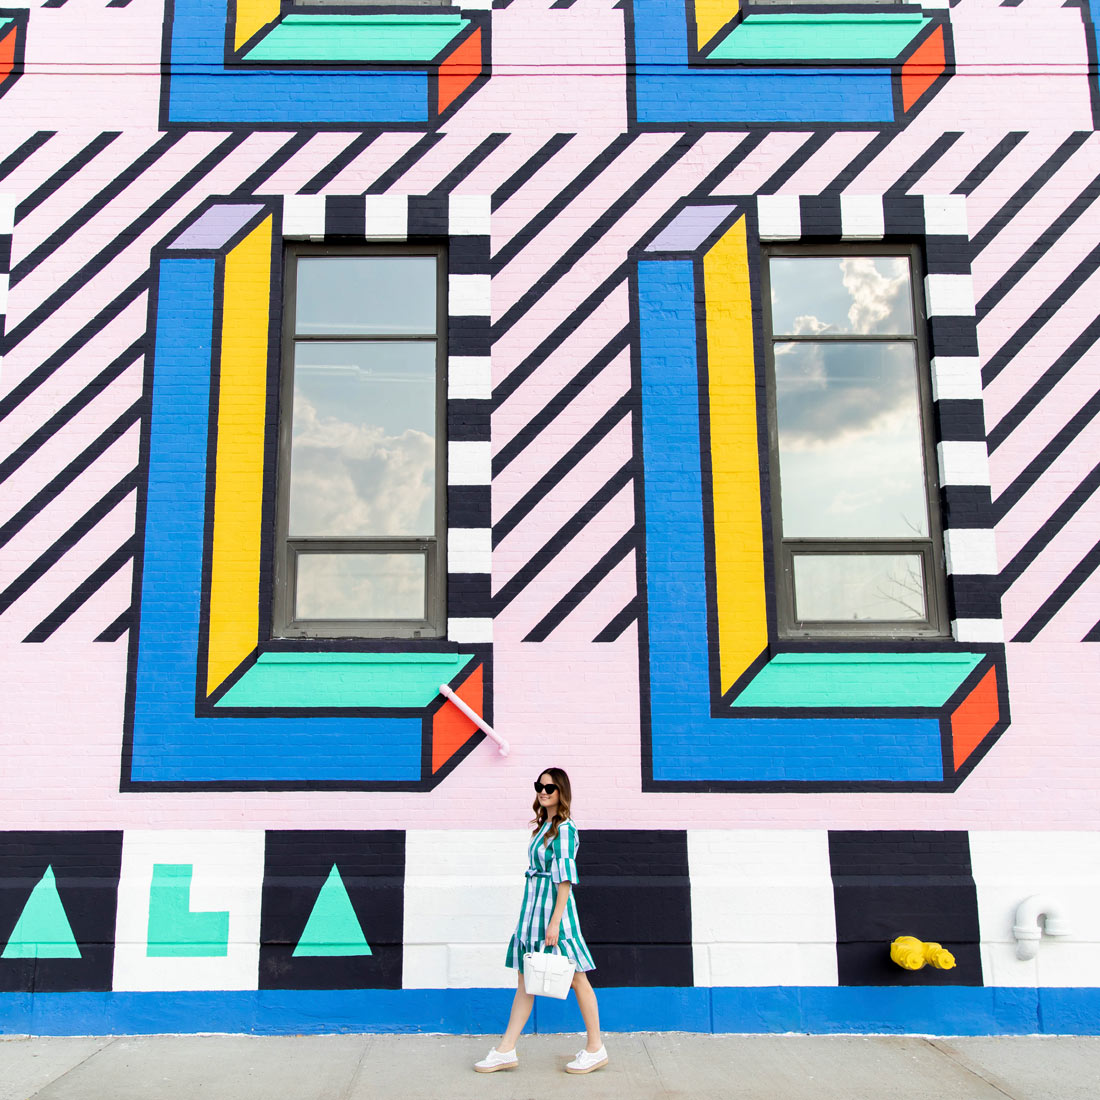 Camille Walala Mural Brooklyn New York